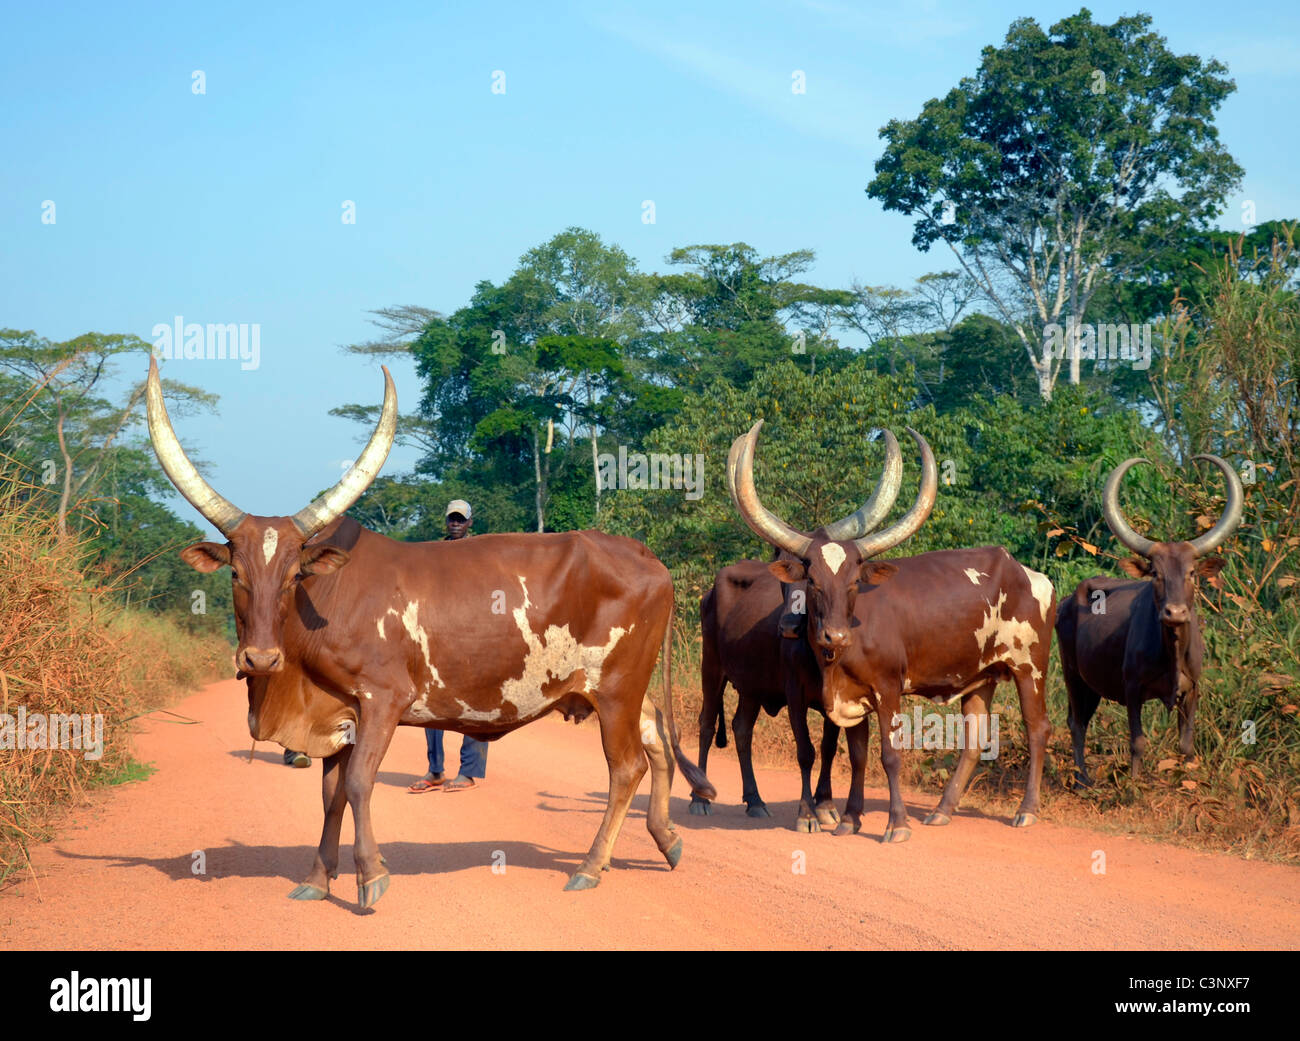 Okape Reserve near Epulu village in Ituri forest, Congo Basin, Democratic Republic of Congo. Traditional cattle - Stock Image